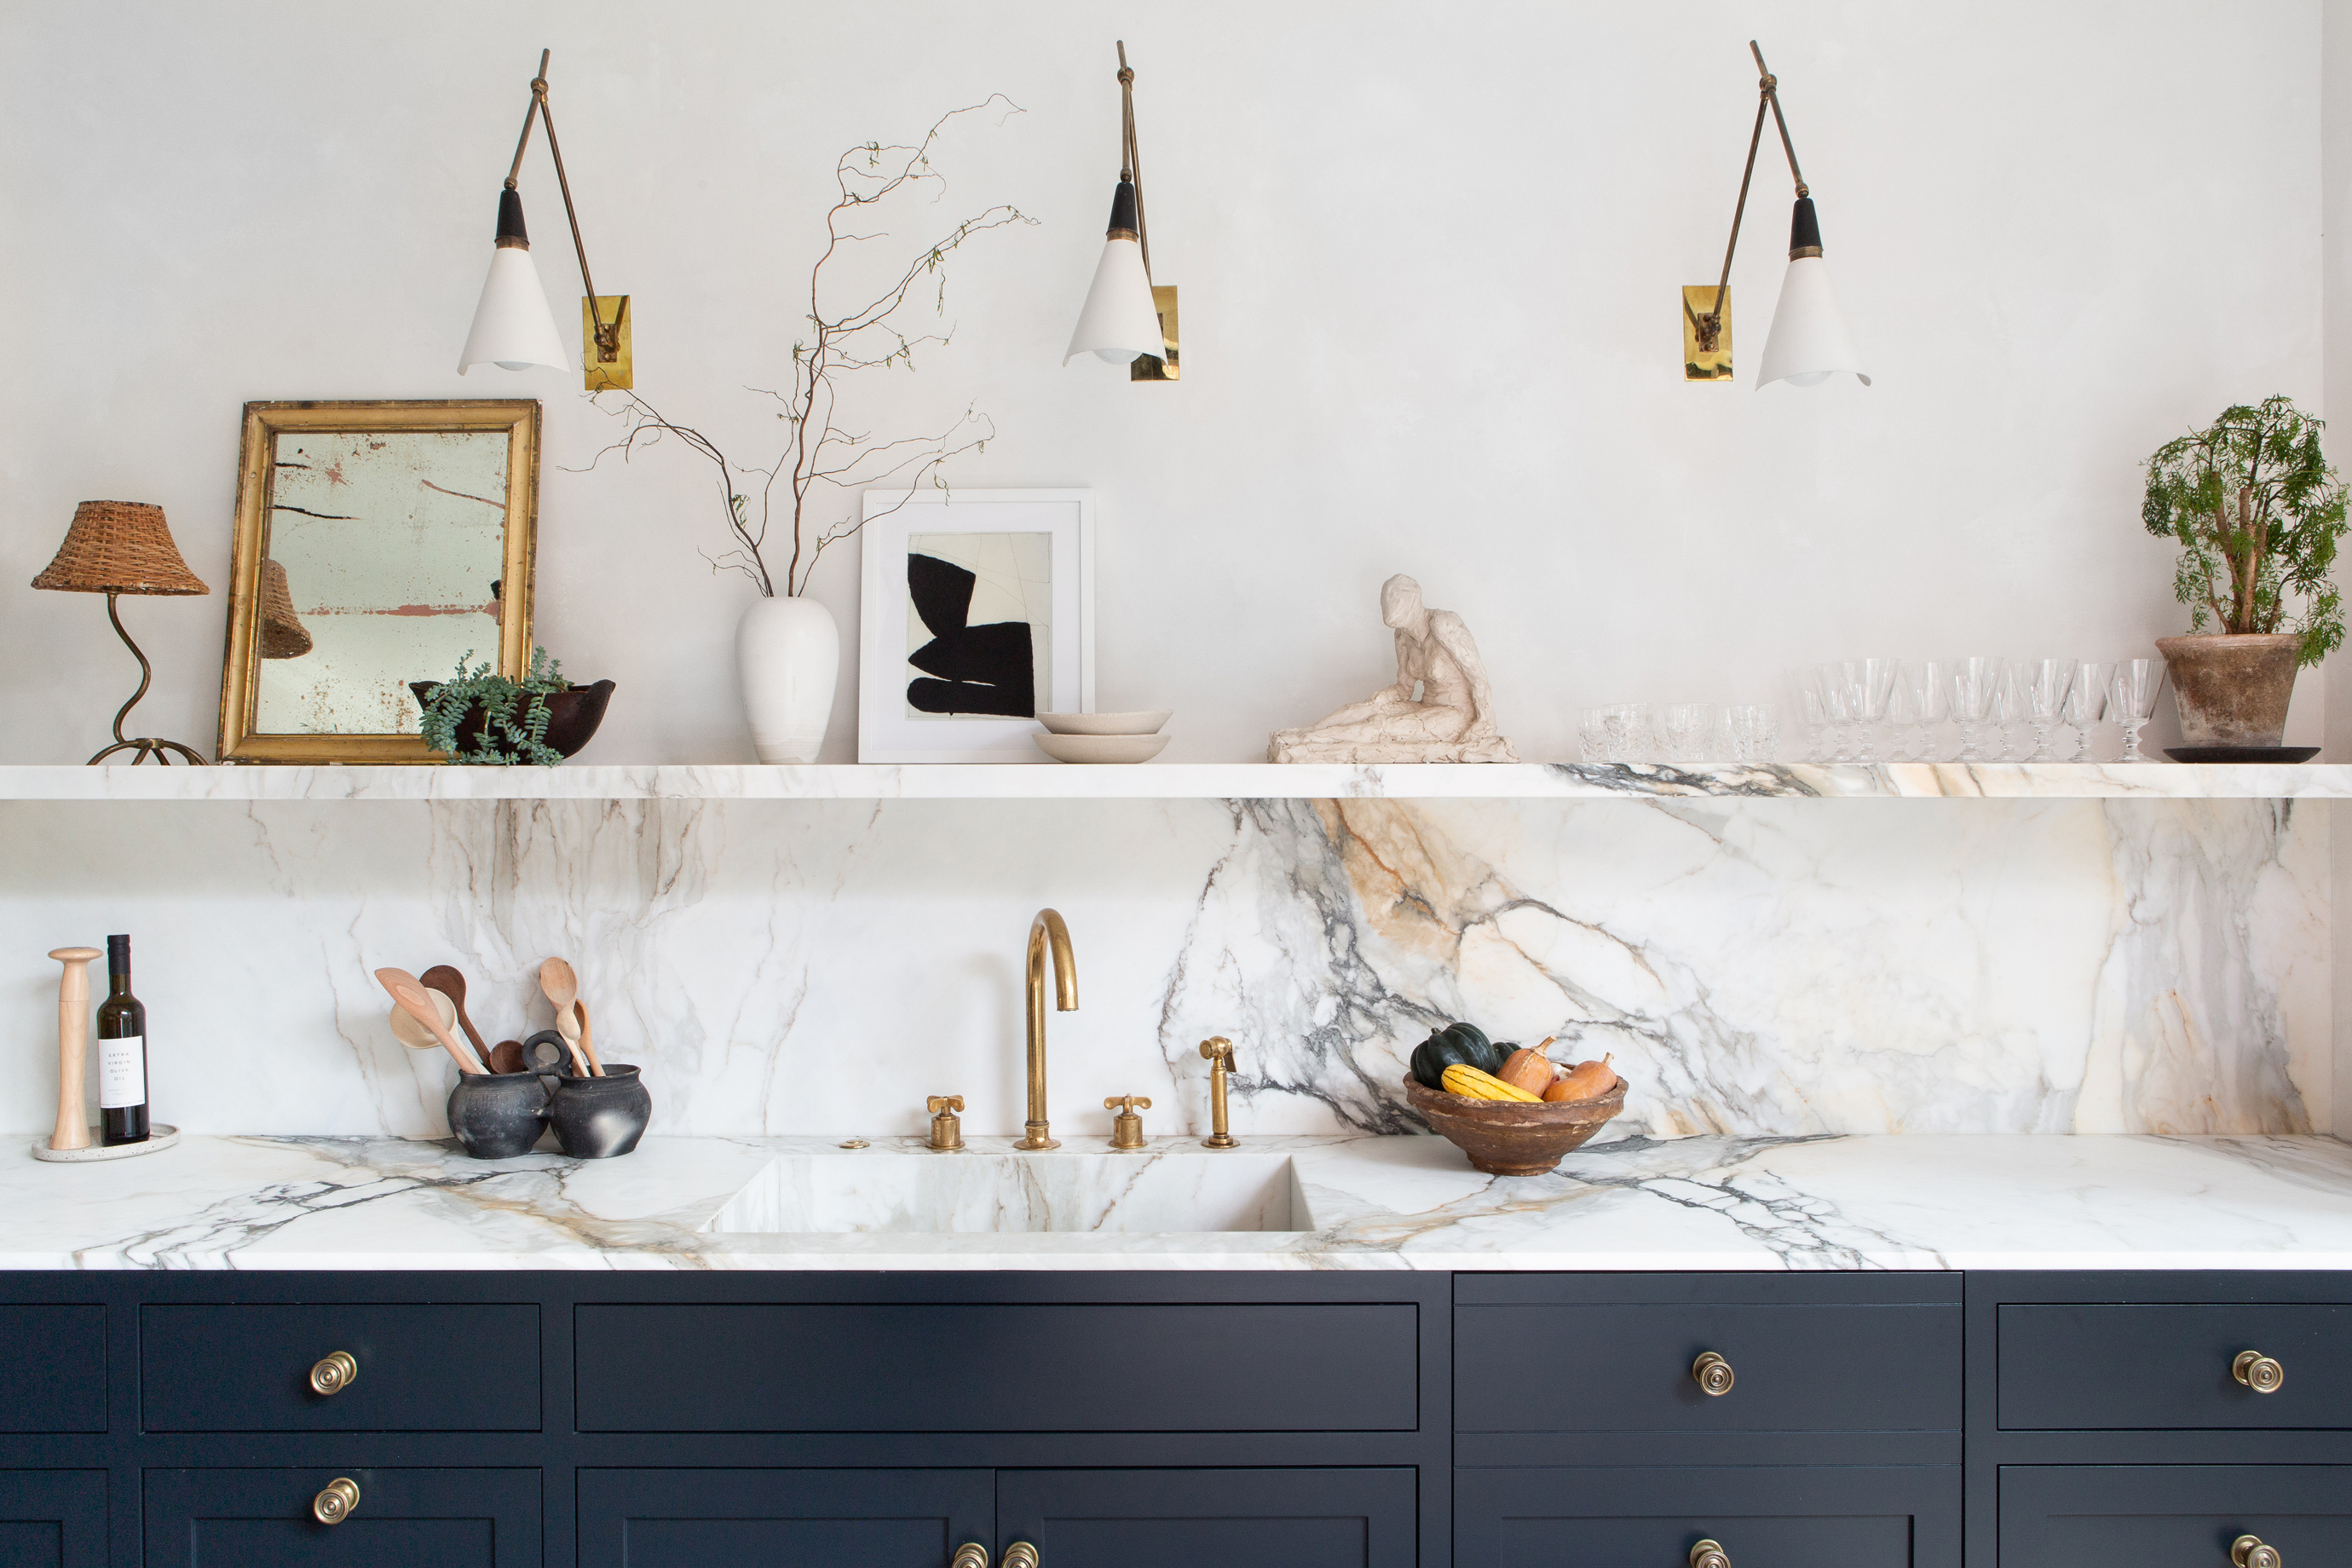 kitchen shelf with sculpture and mirror marble countertop